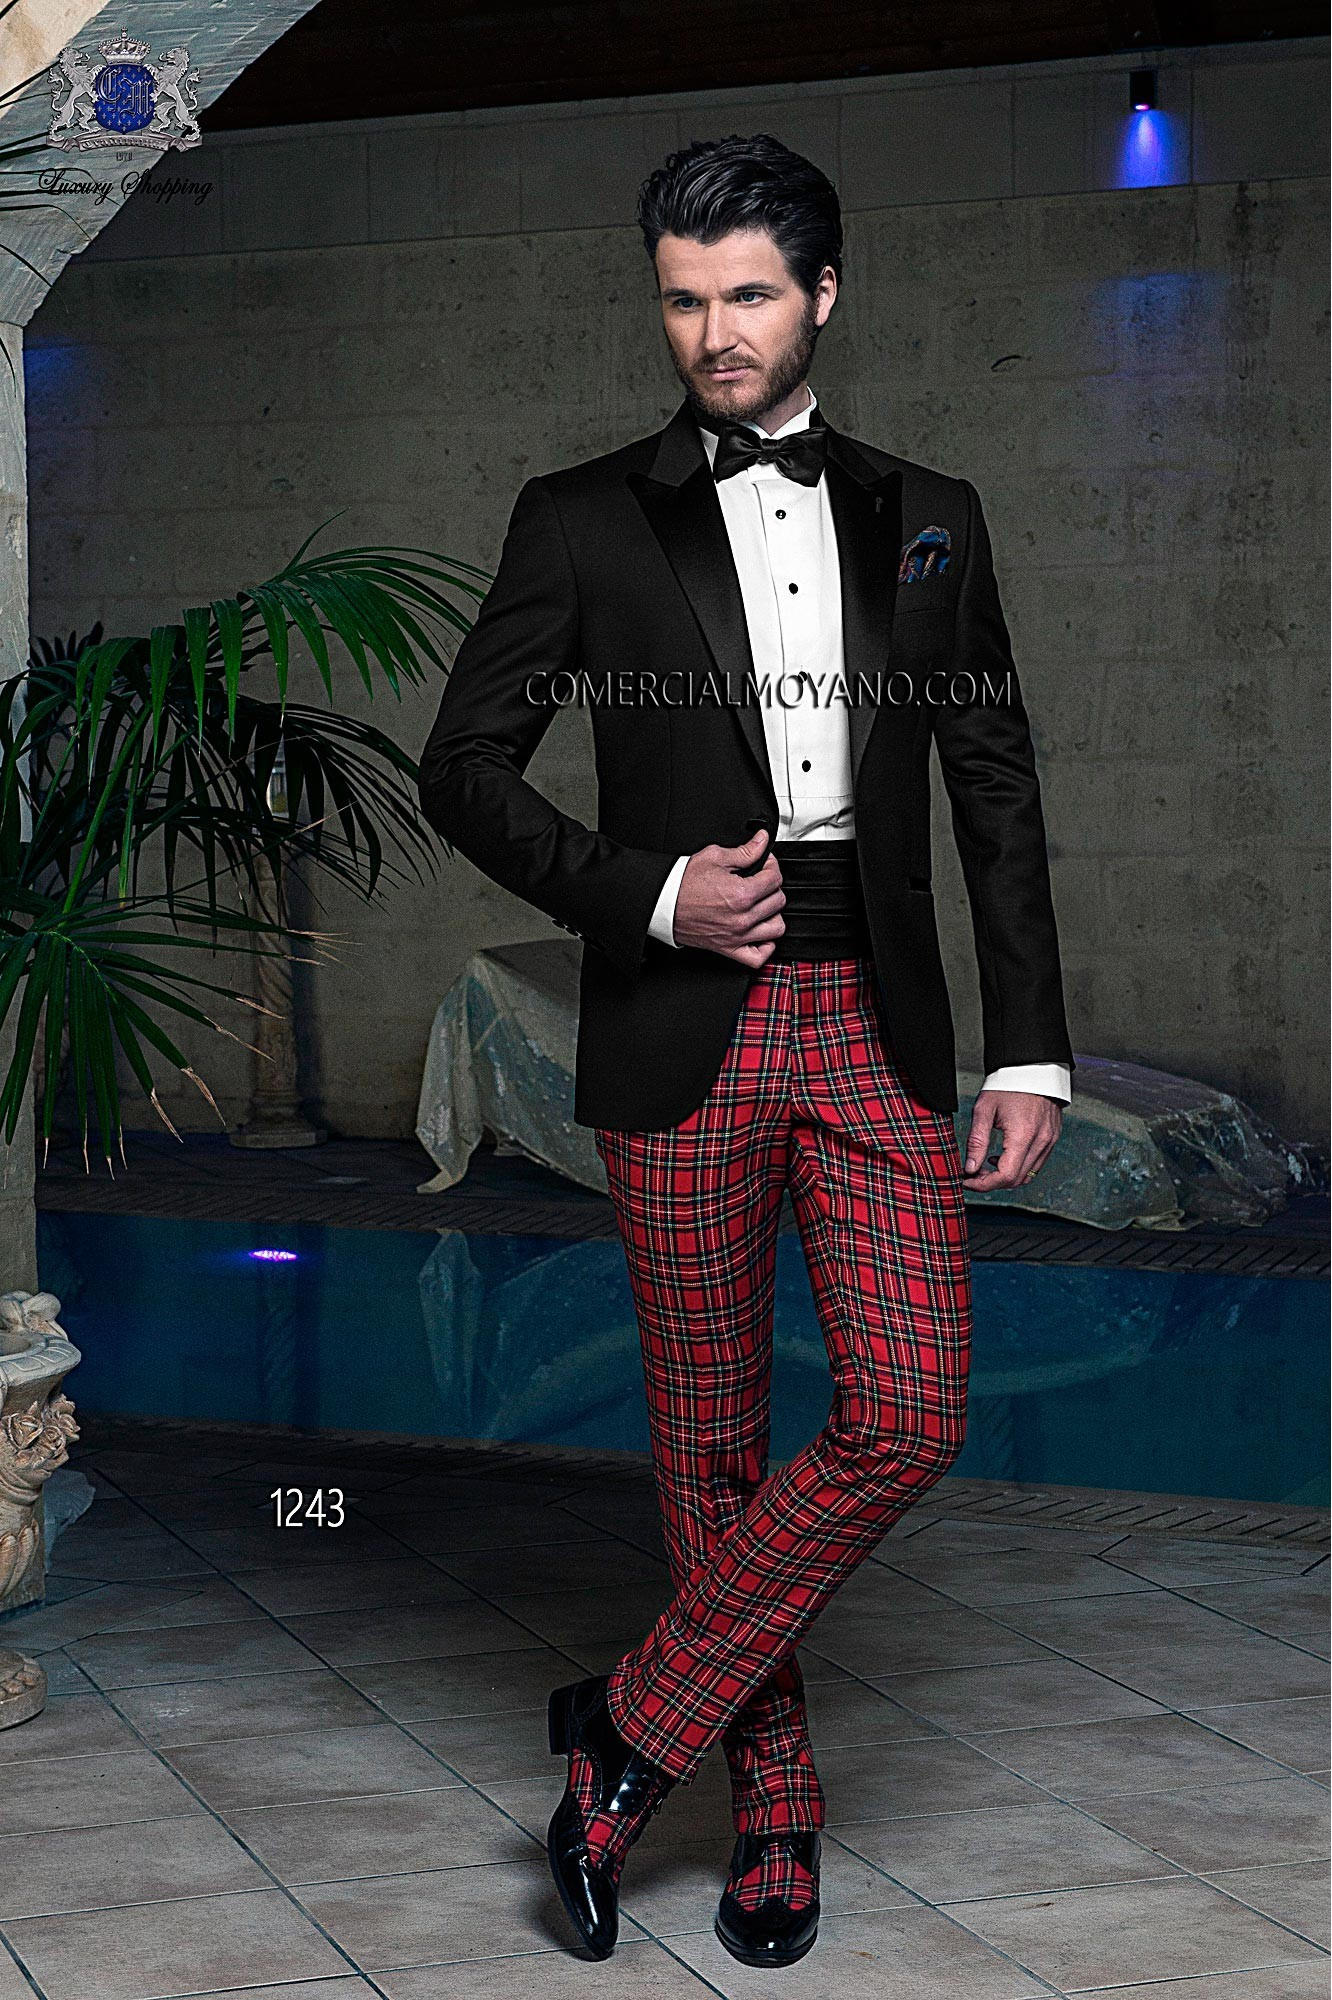 Black Tie black men wedding suit model 1243 Ottavio Nuccio Gala